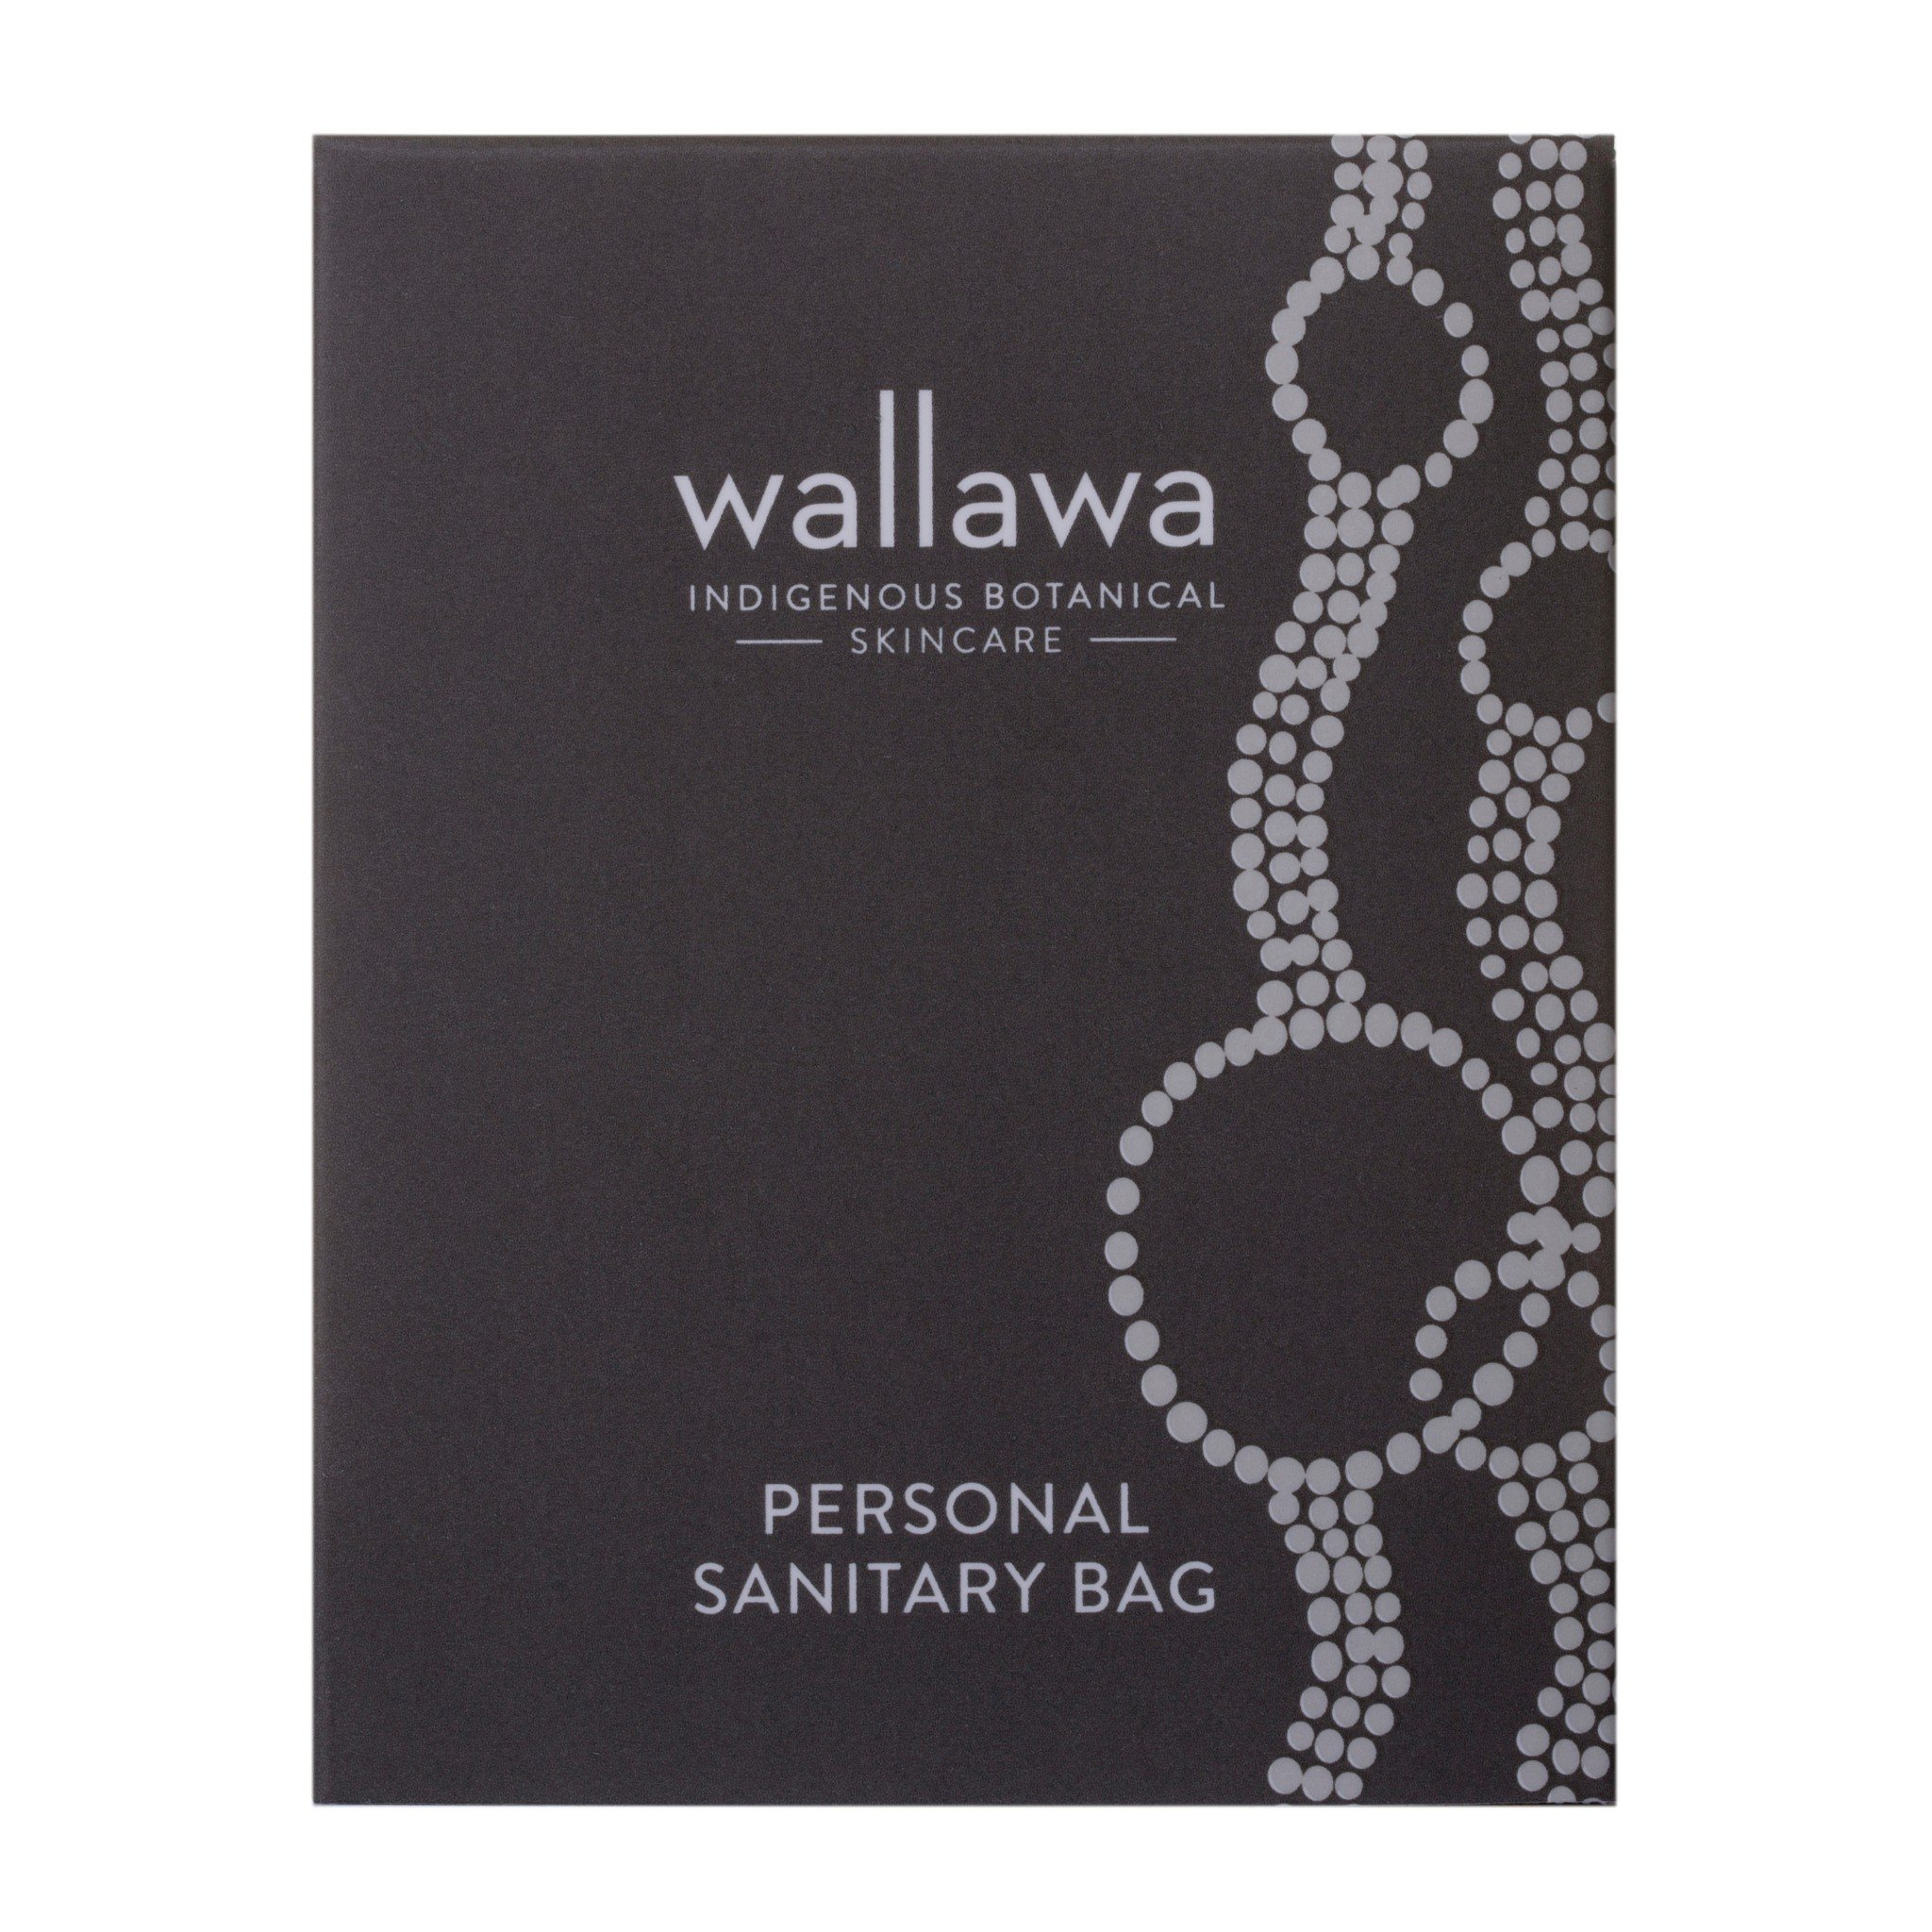 Wallawa Sanitary Bag (250 units)